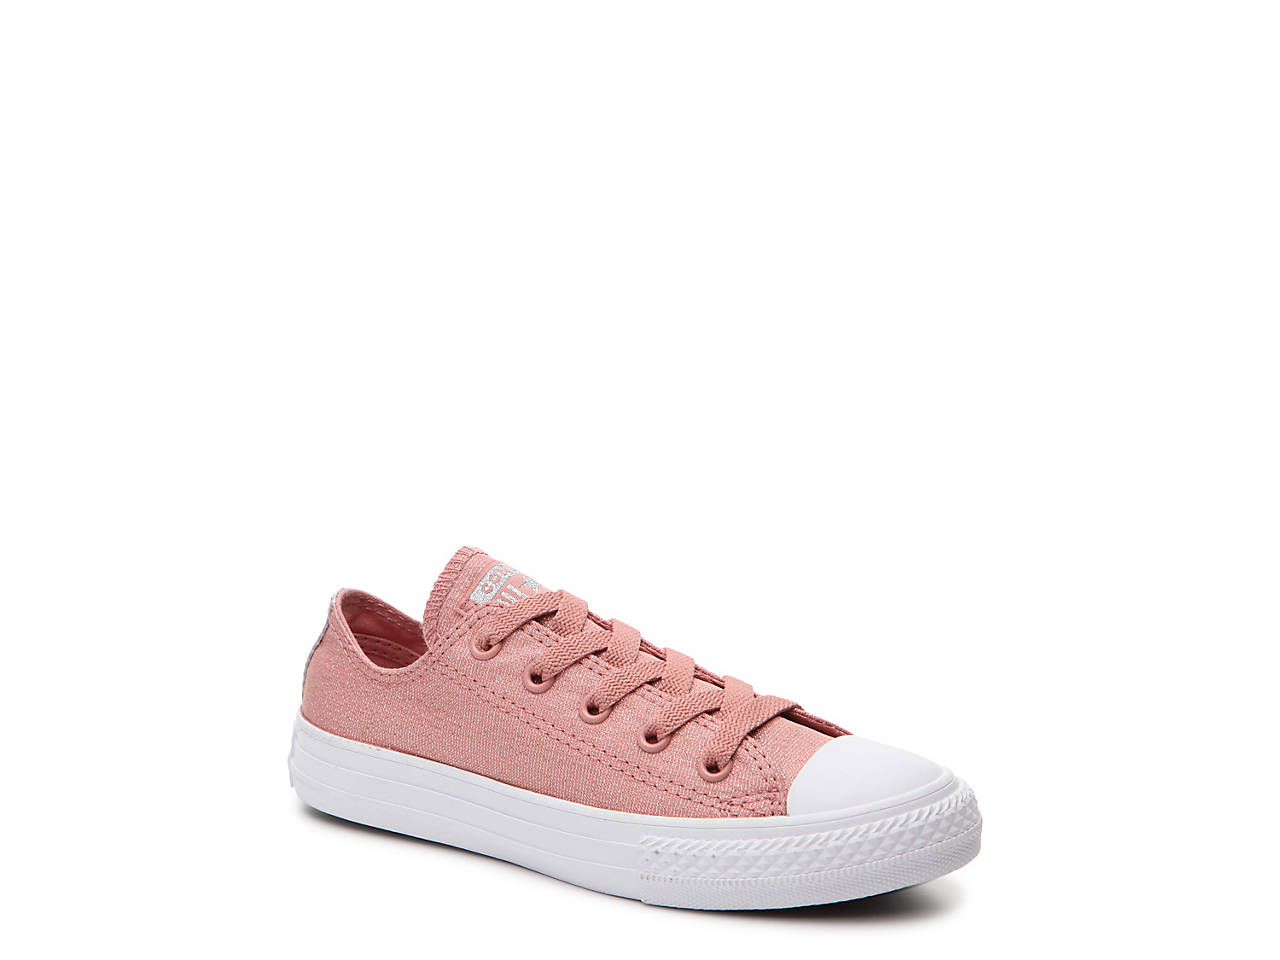 98cd7e24552f88 Converse Chuck Taylor All Star Fairy Dust Toddler   Youth Sneaker ...